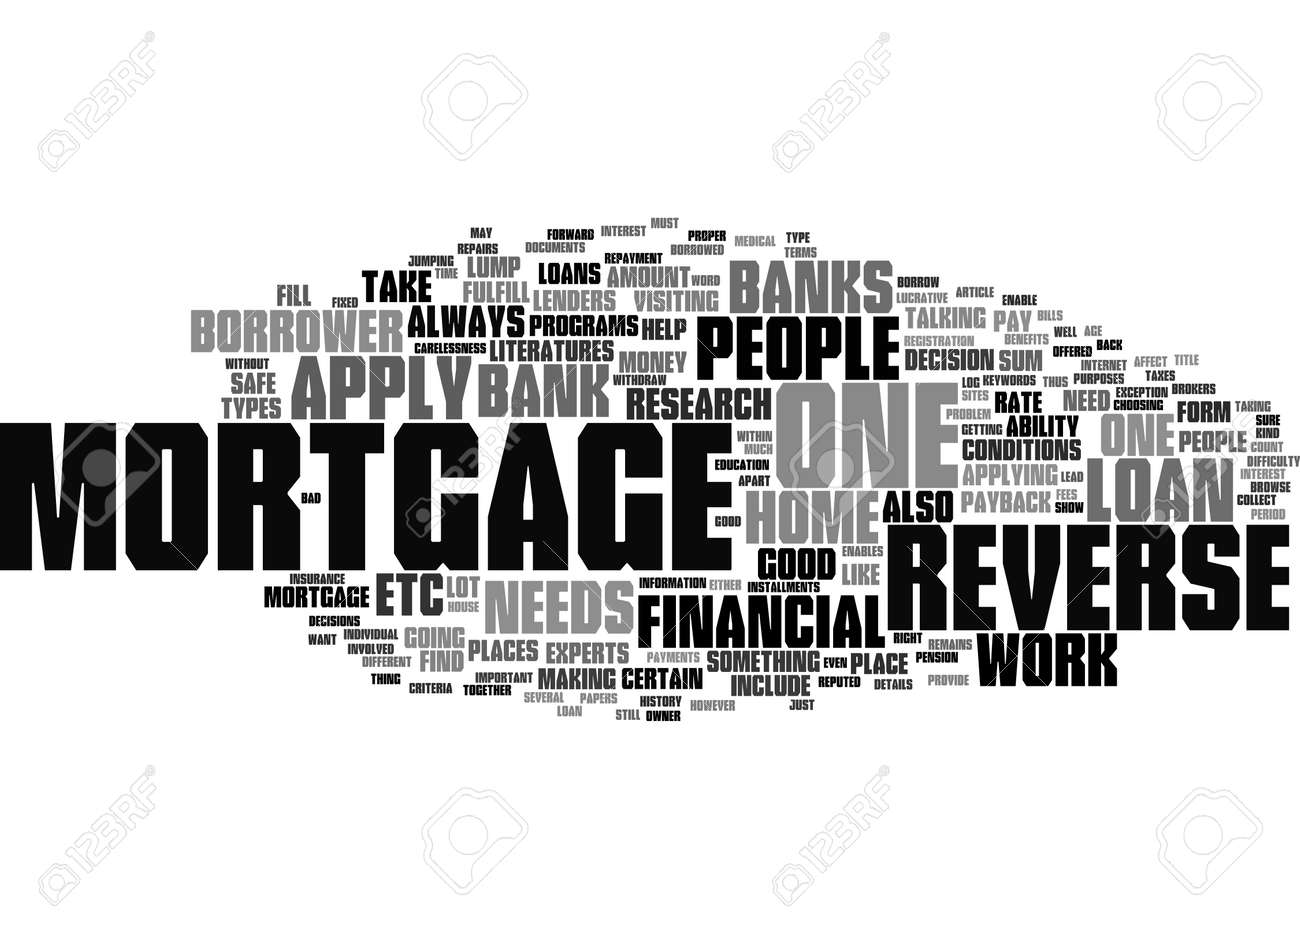 Word Cloud Summary of Reverse Mortgage Article - 160186235